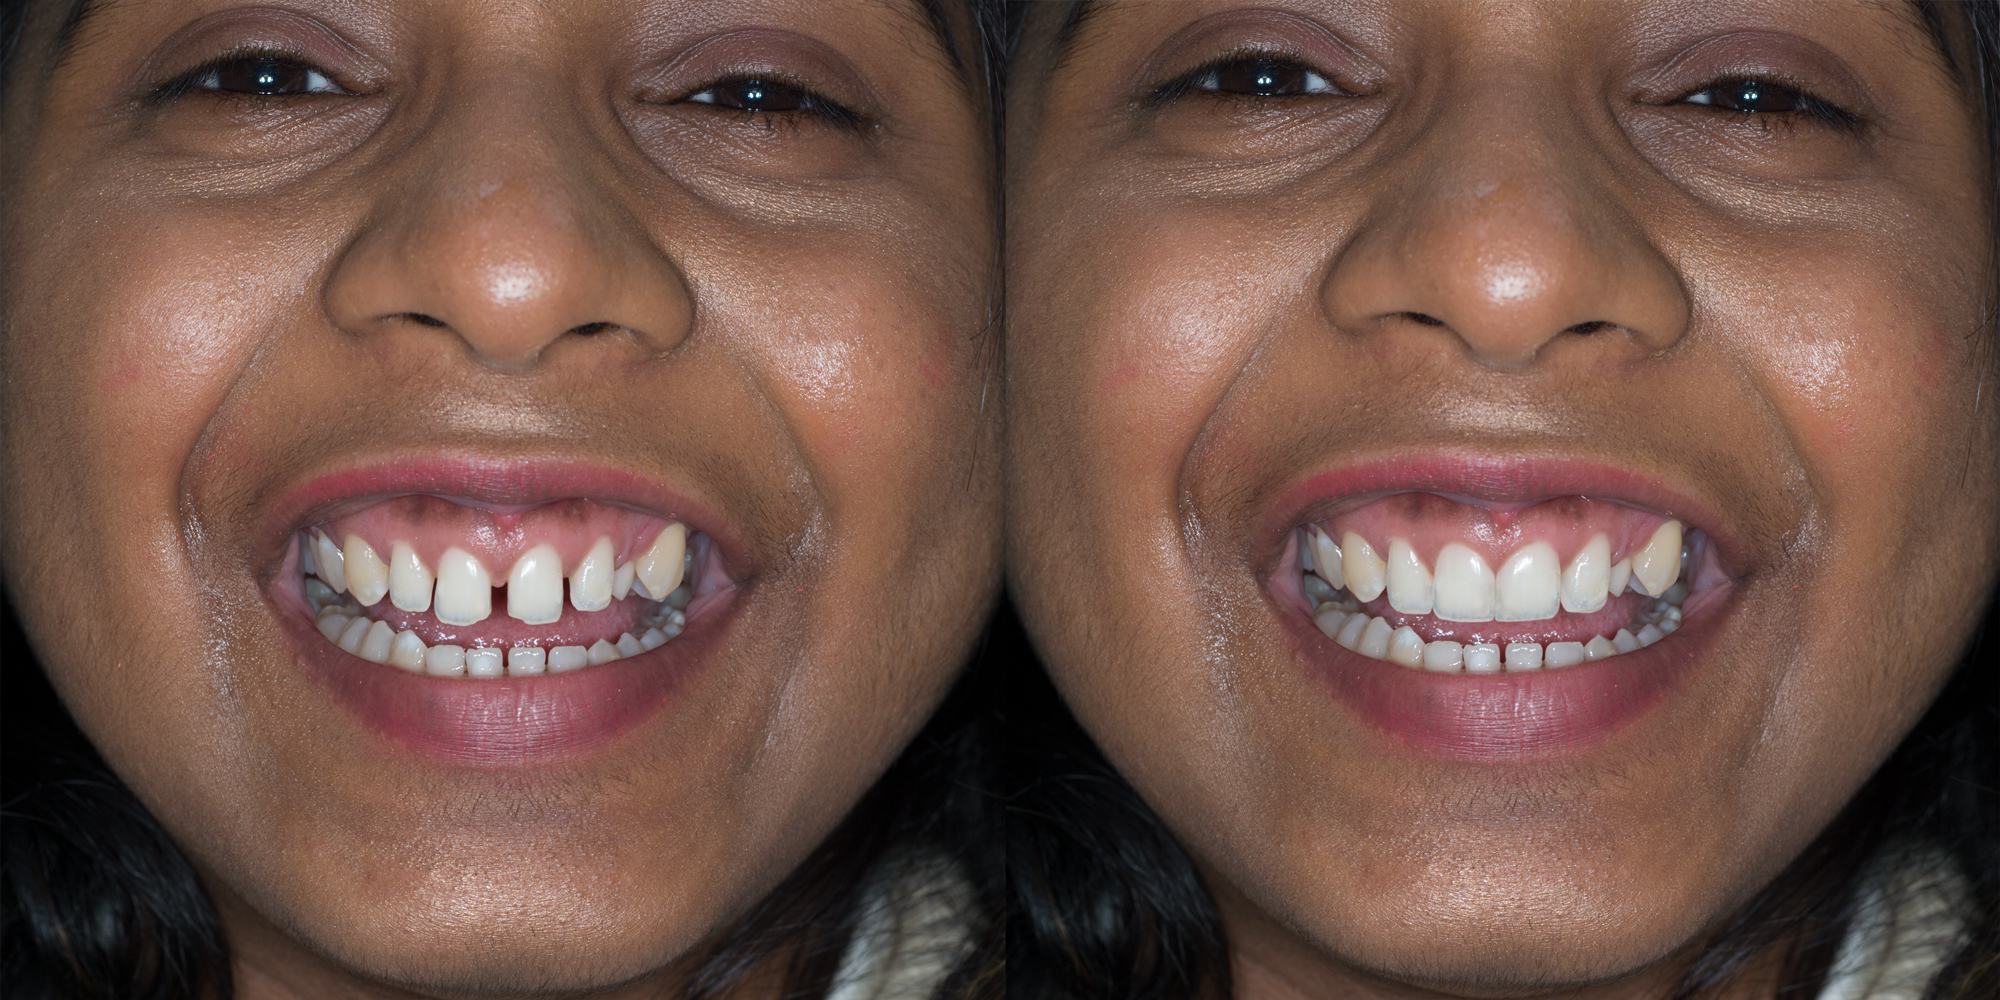 Photo-Realistic-Diagnostics ron winter of fabulous teeth @ seaside dental laboratory & clinic Takapuna Auckland New Zealand.jpg